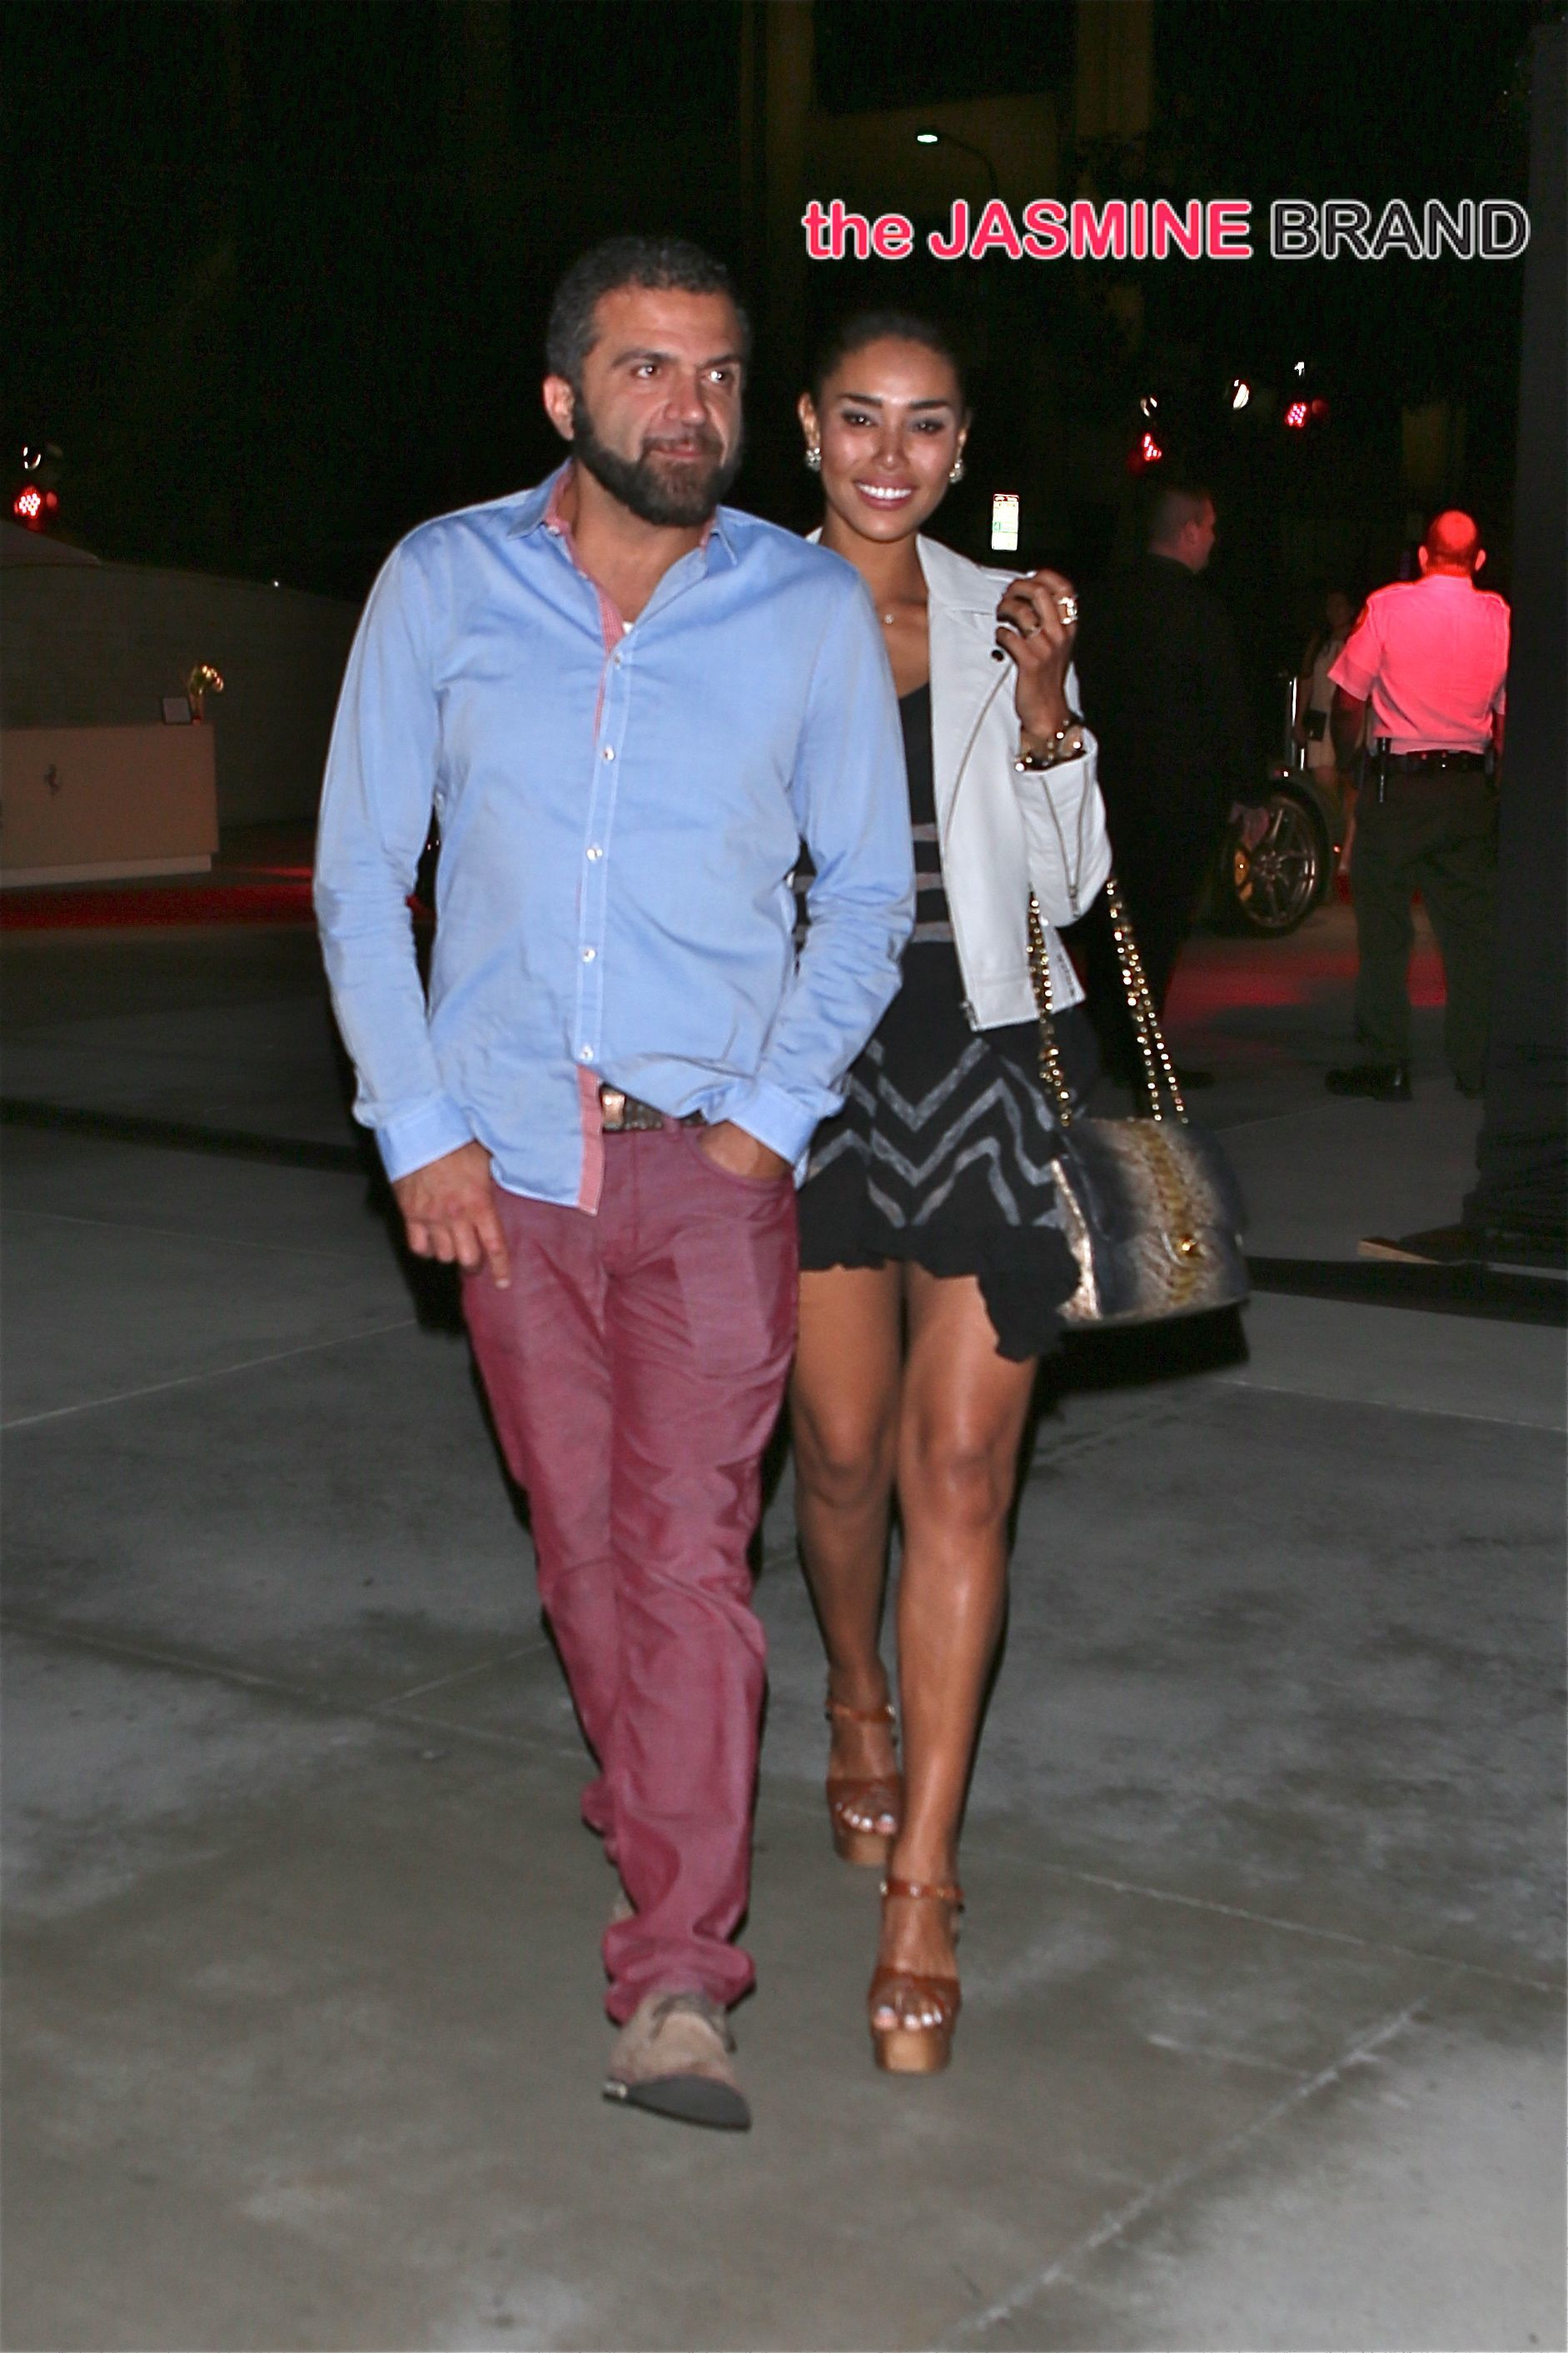 V. Stiviano attends the State of the Art Ferrari event with male friend